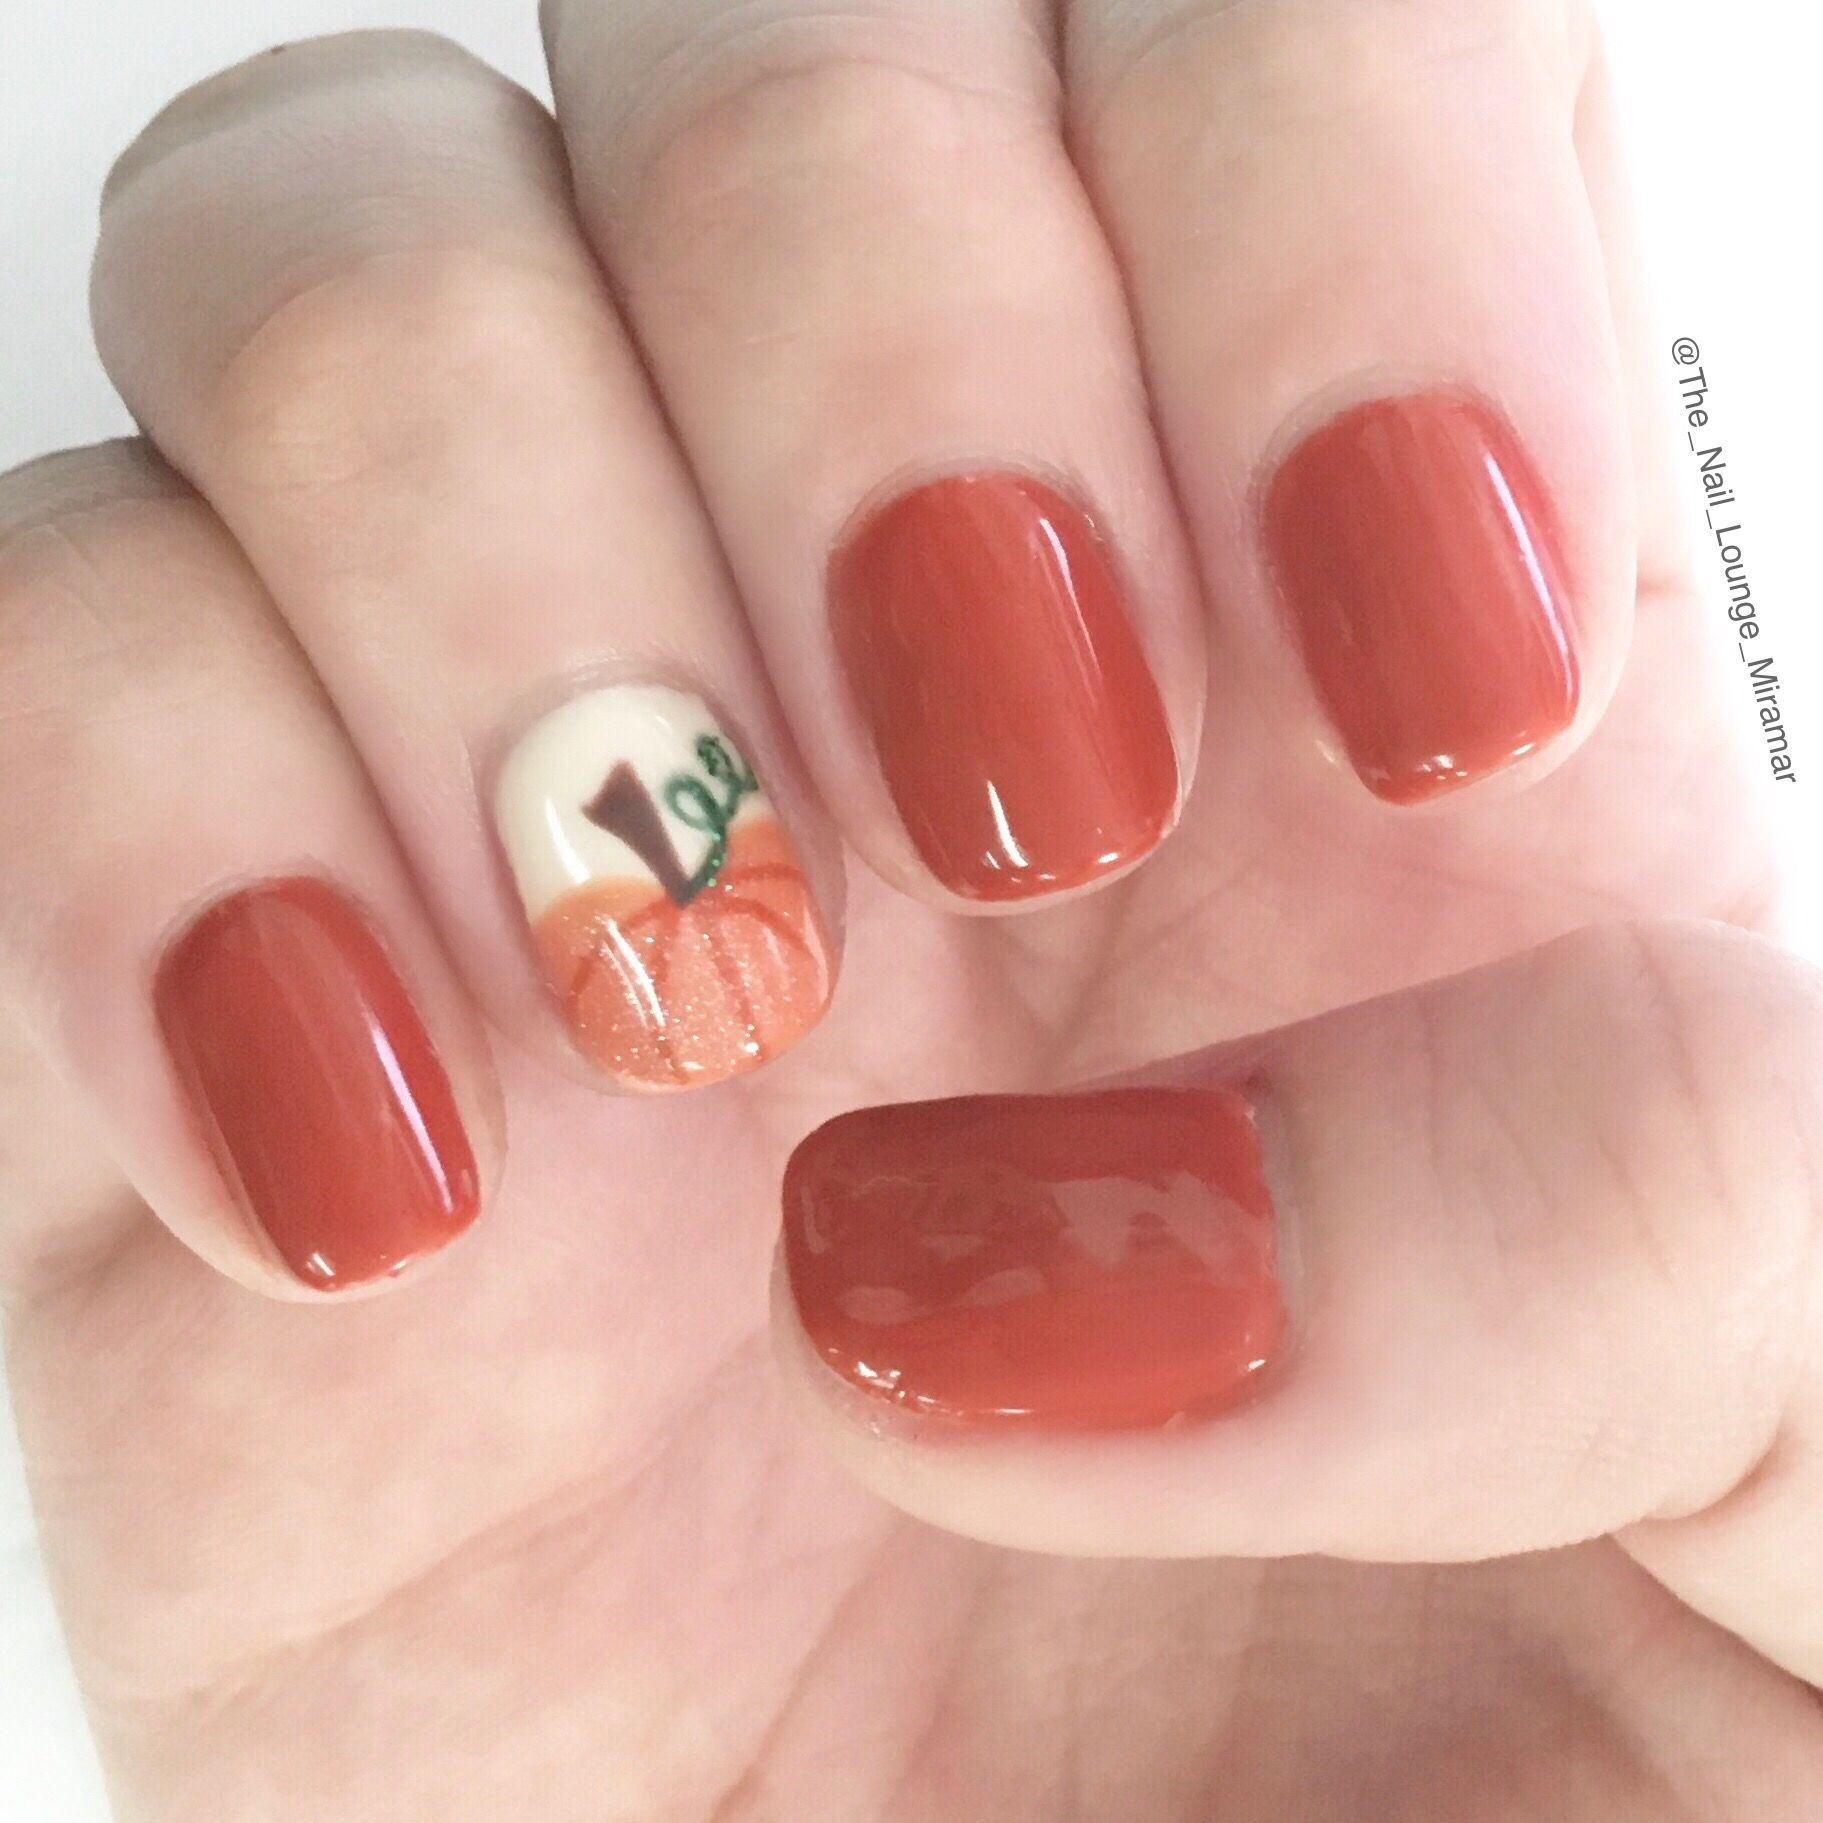 Last Autumn Nail Art Of The Year: The Best Thanksgiving Nail Art